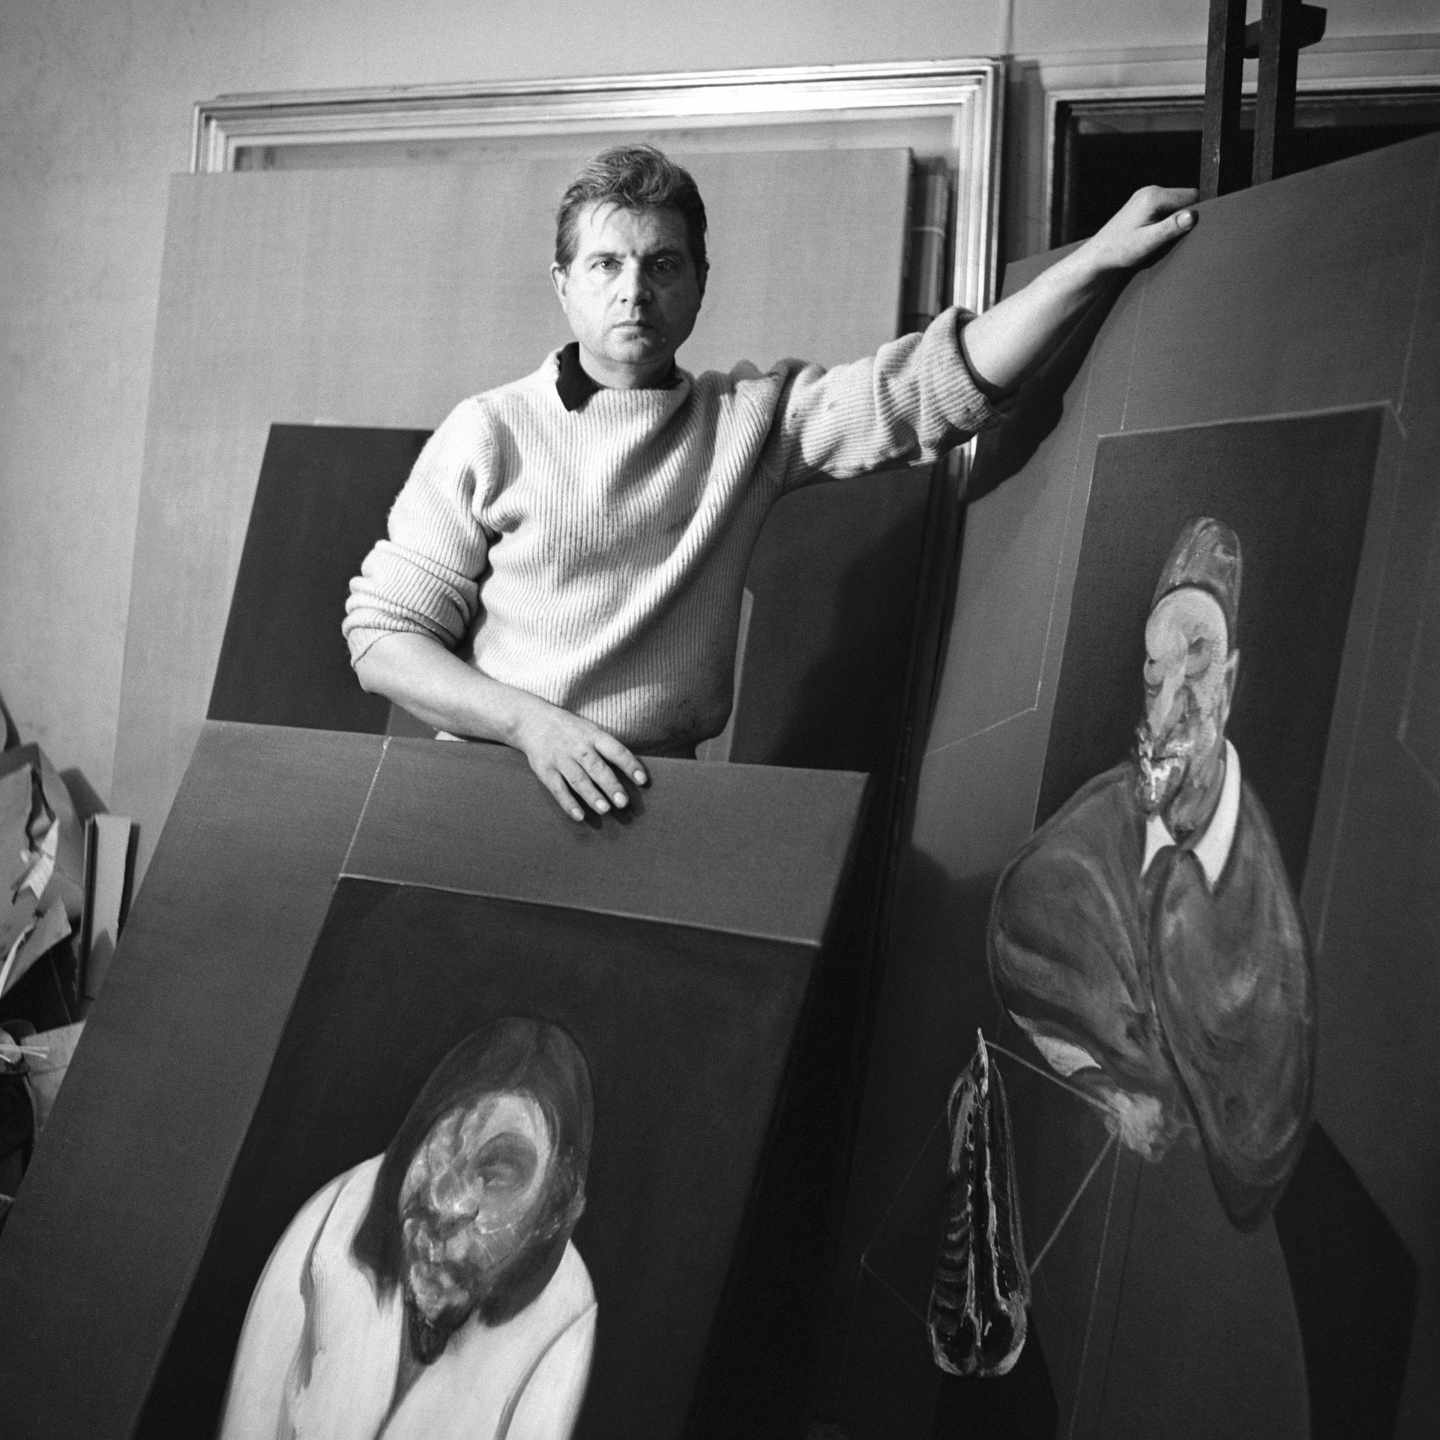 Francis Bacon 1960 ©The Cecil Beaton Studio Archive at Sotheby's